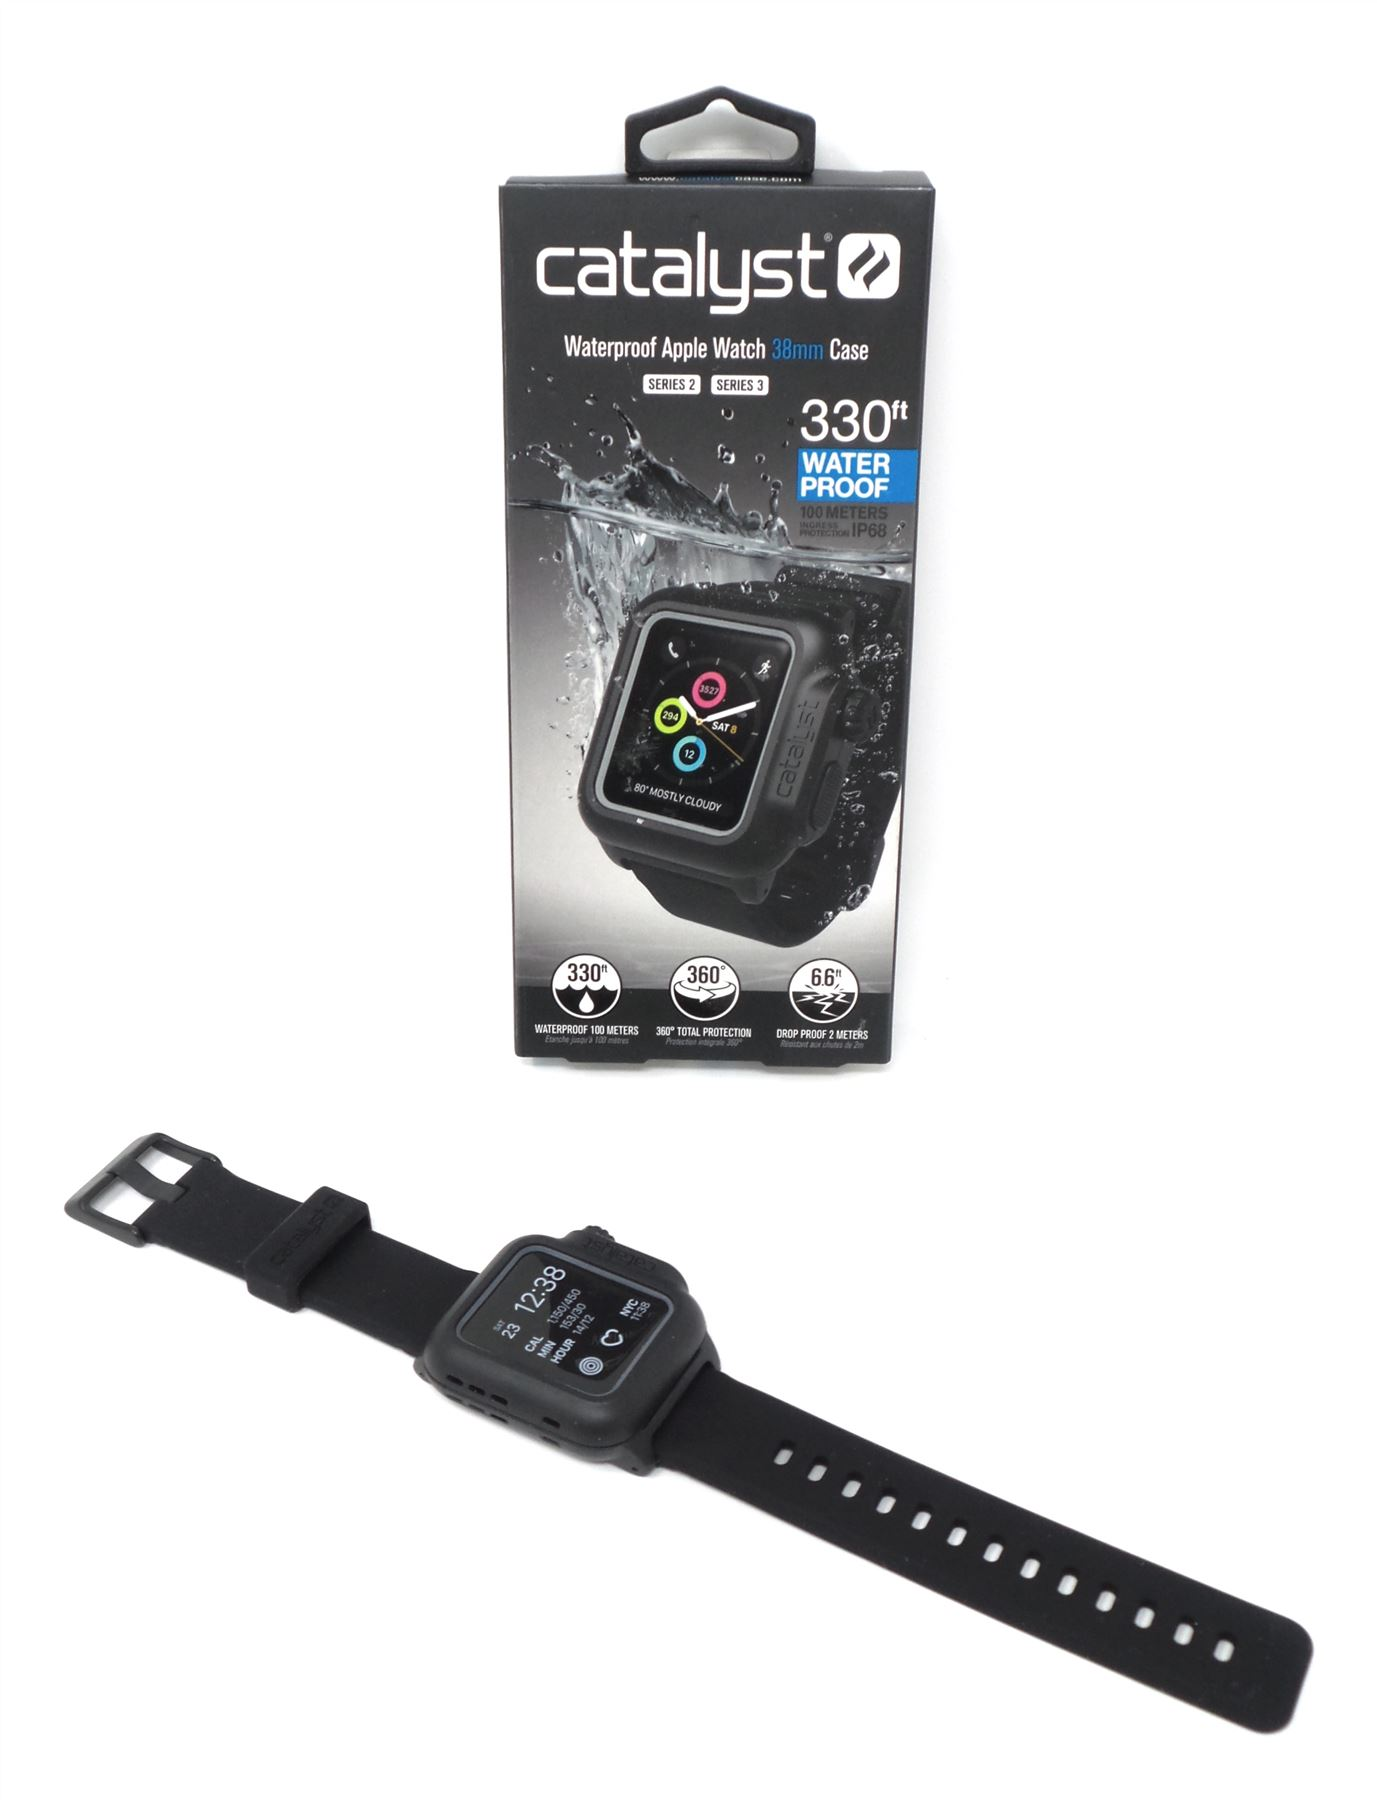 buy online 63e0f 2ab29 Details about Catalyst Waterproof Case + Band for Apple Watch 38mm Series 2  & 3 Stealth Black